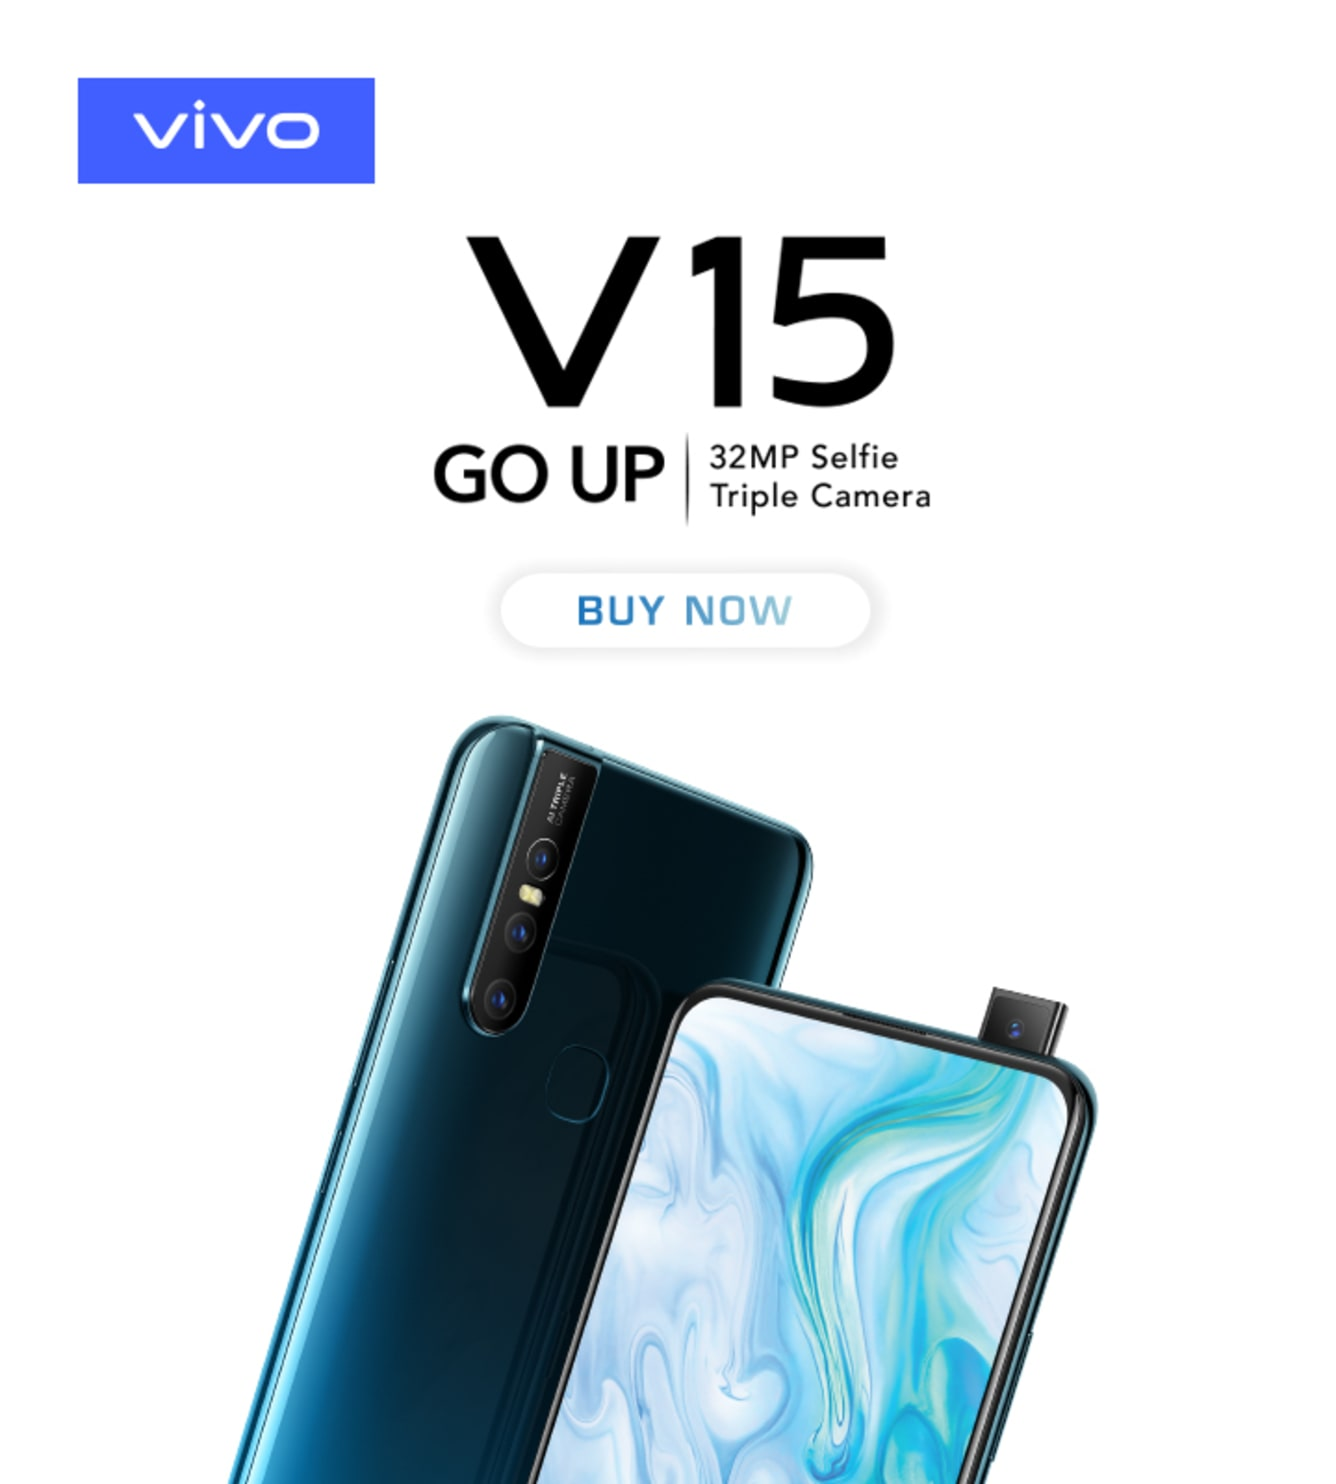 Week 17 - New Vivo